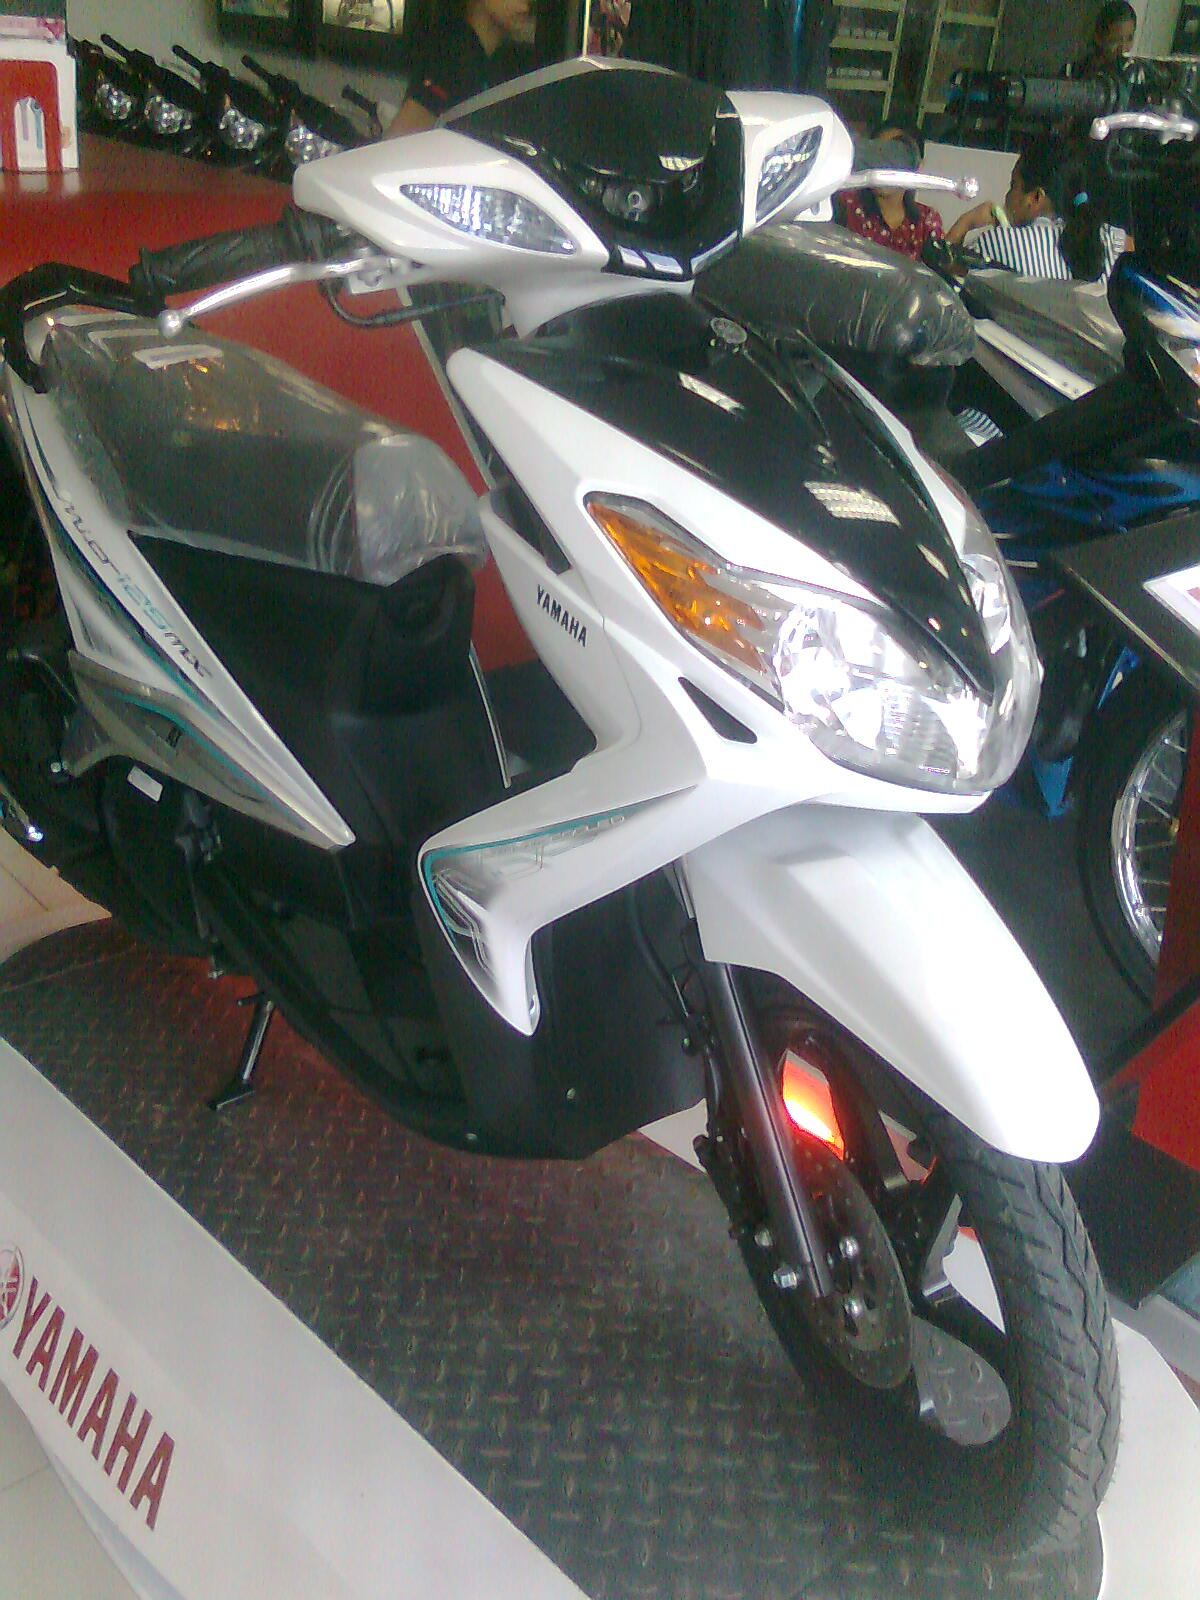 2011 Yamaha Mio Mx 125cc Philippines Guidespecs Cover Kipas 5 Color White And Black